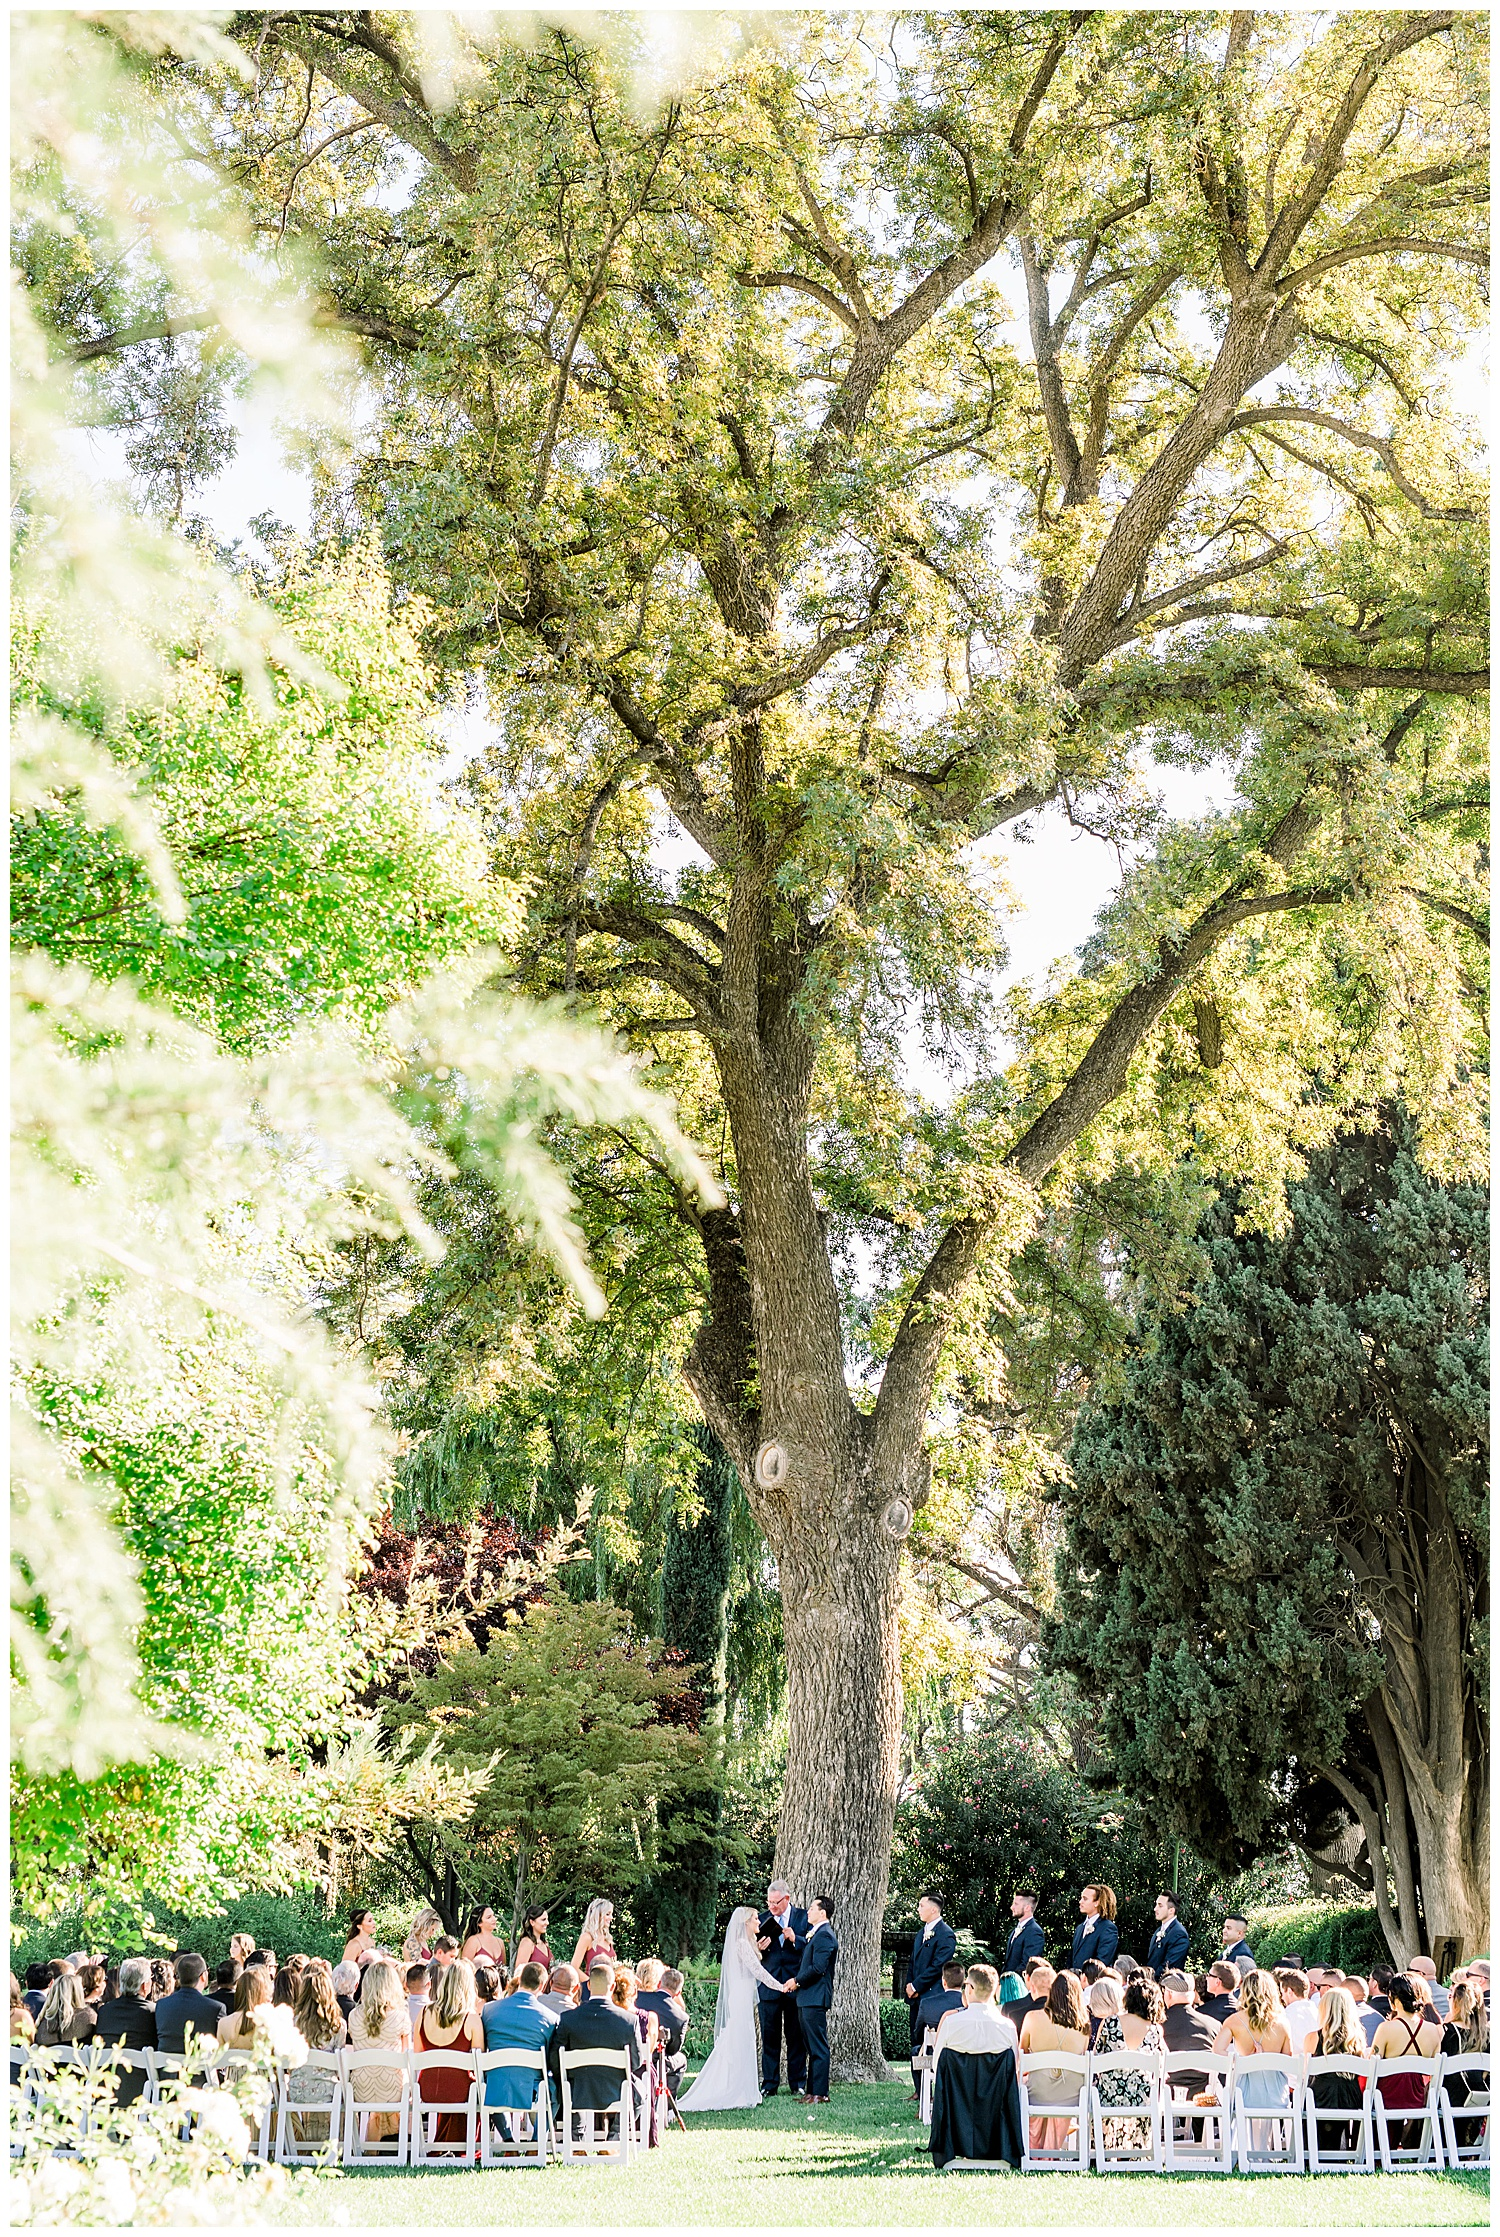 Janine_Licare_Photography_San_Francisco_Wedding_Photographer_Carneros_Tyge_Williams_Sonoma_Napa_0229.jpg